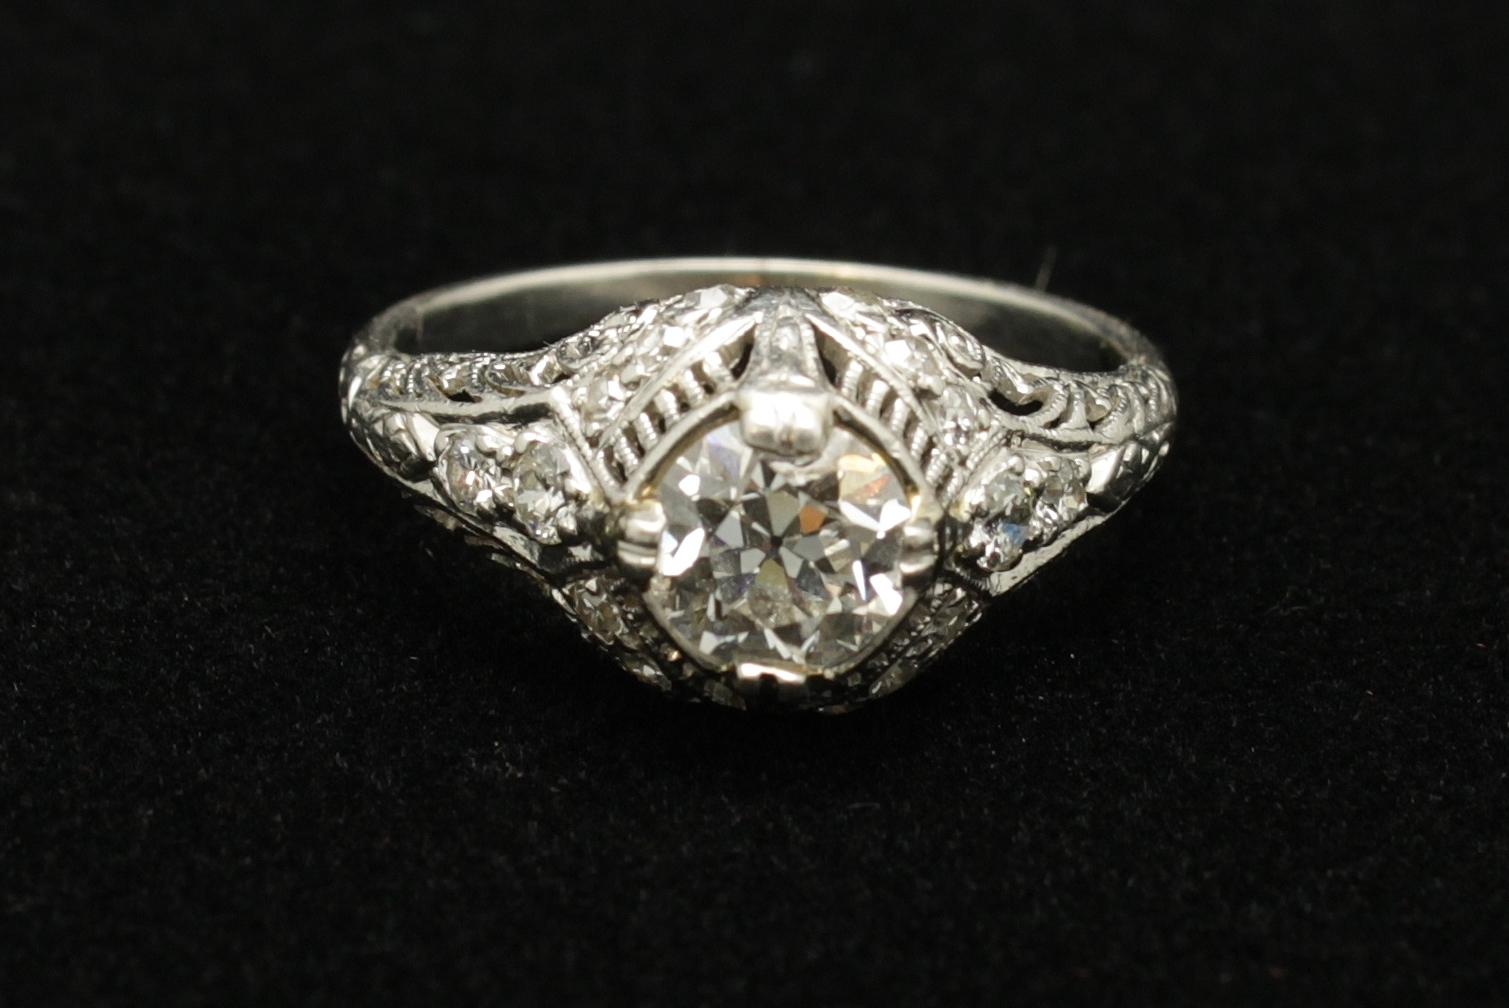 Antique Platinum Diamond Old European Cut 1.14 cts